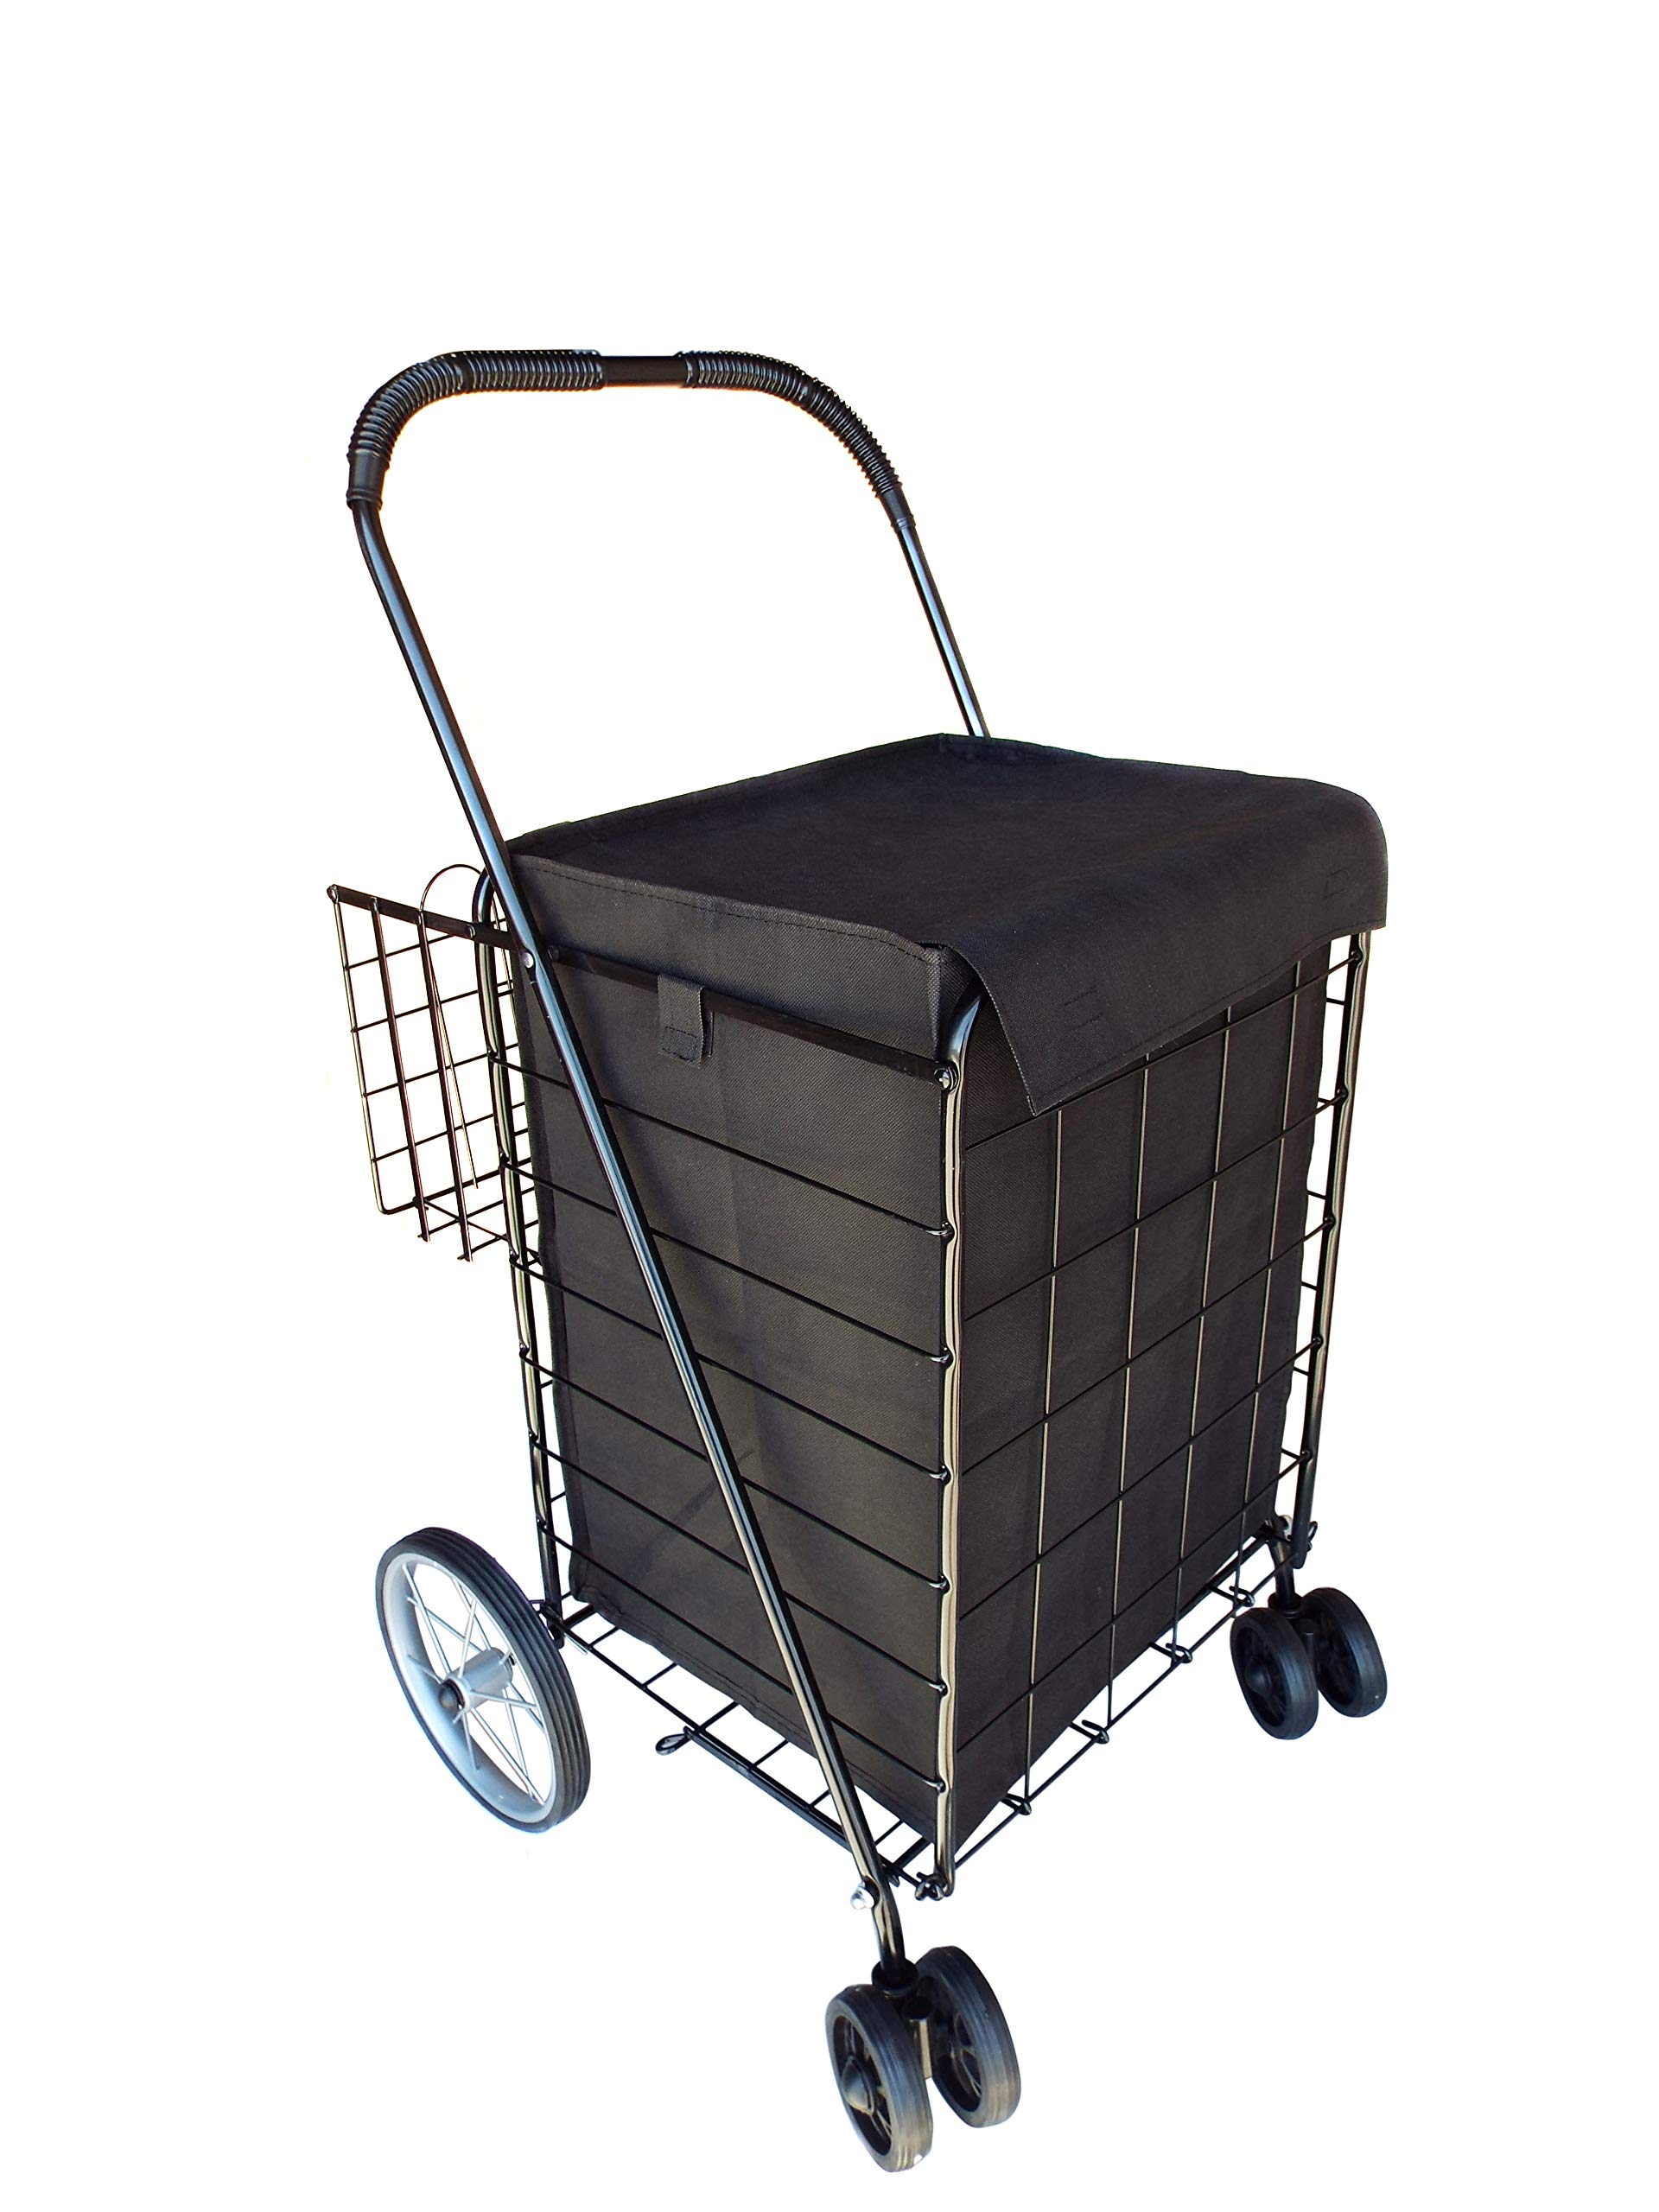 Portable Double Basket Heavy-Duty Folding Shopping Cart w/Front Swivel Wheels, and Steel Back Wheels - Fits in Trunk OR Back Seat - Never Make Two Grocery Trips Again - Black with Liner by Safari Swings